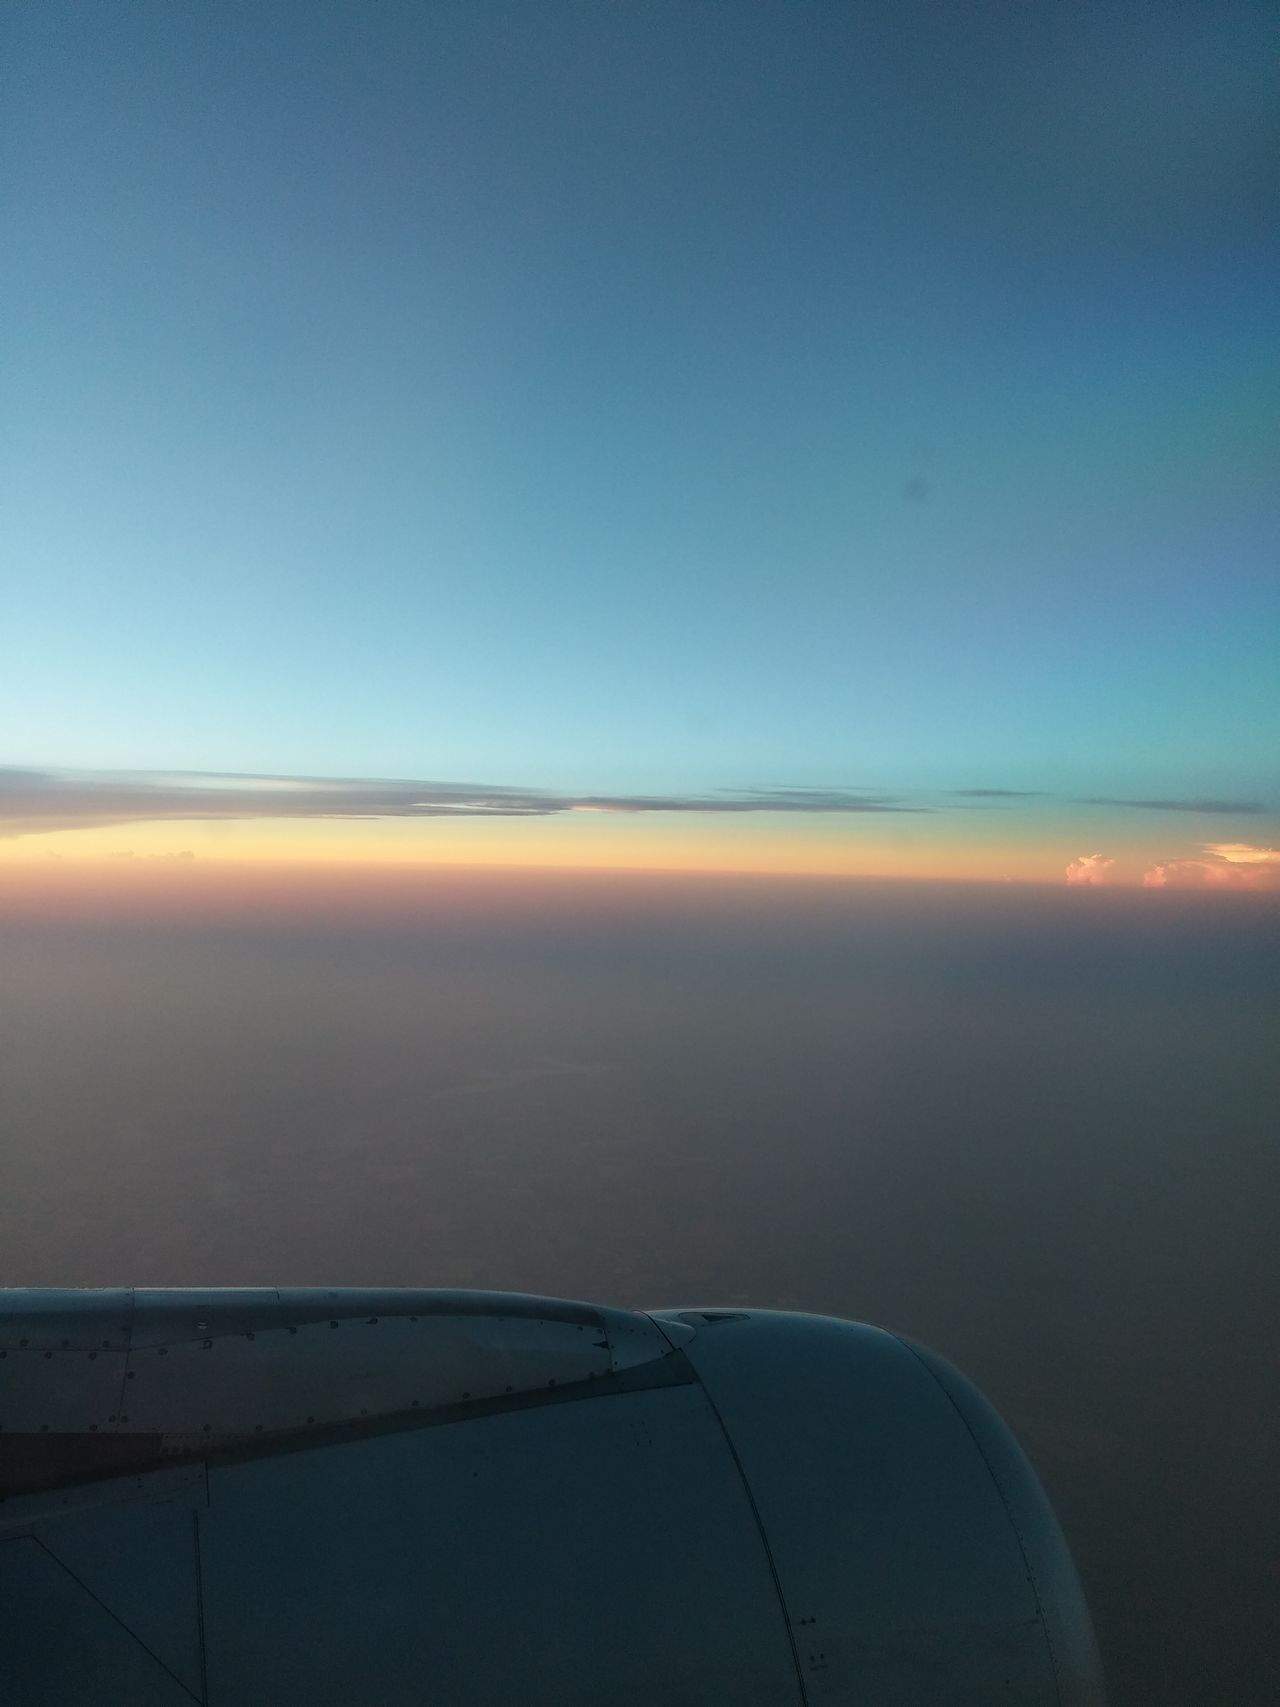 No Edits No Filters Fly In The Sky Beautiful Findingthebeauty Finding The Beauty Rainbow Sky Plane View Plane Diaries Dreams Eyes Open Taking Photos Check This Out Window View Colors Travel Millennial Pink